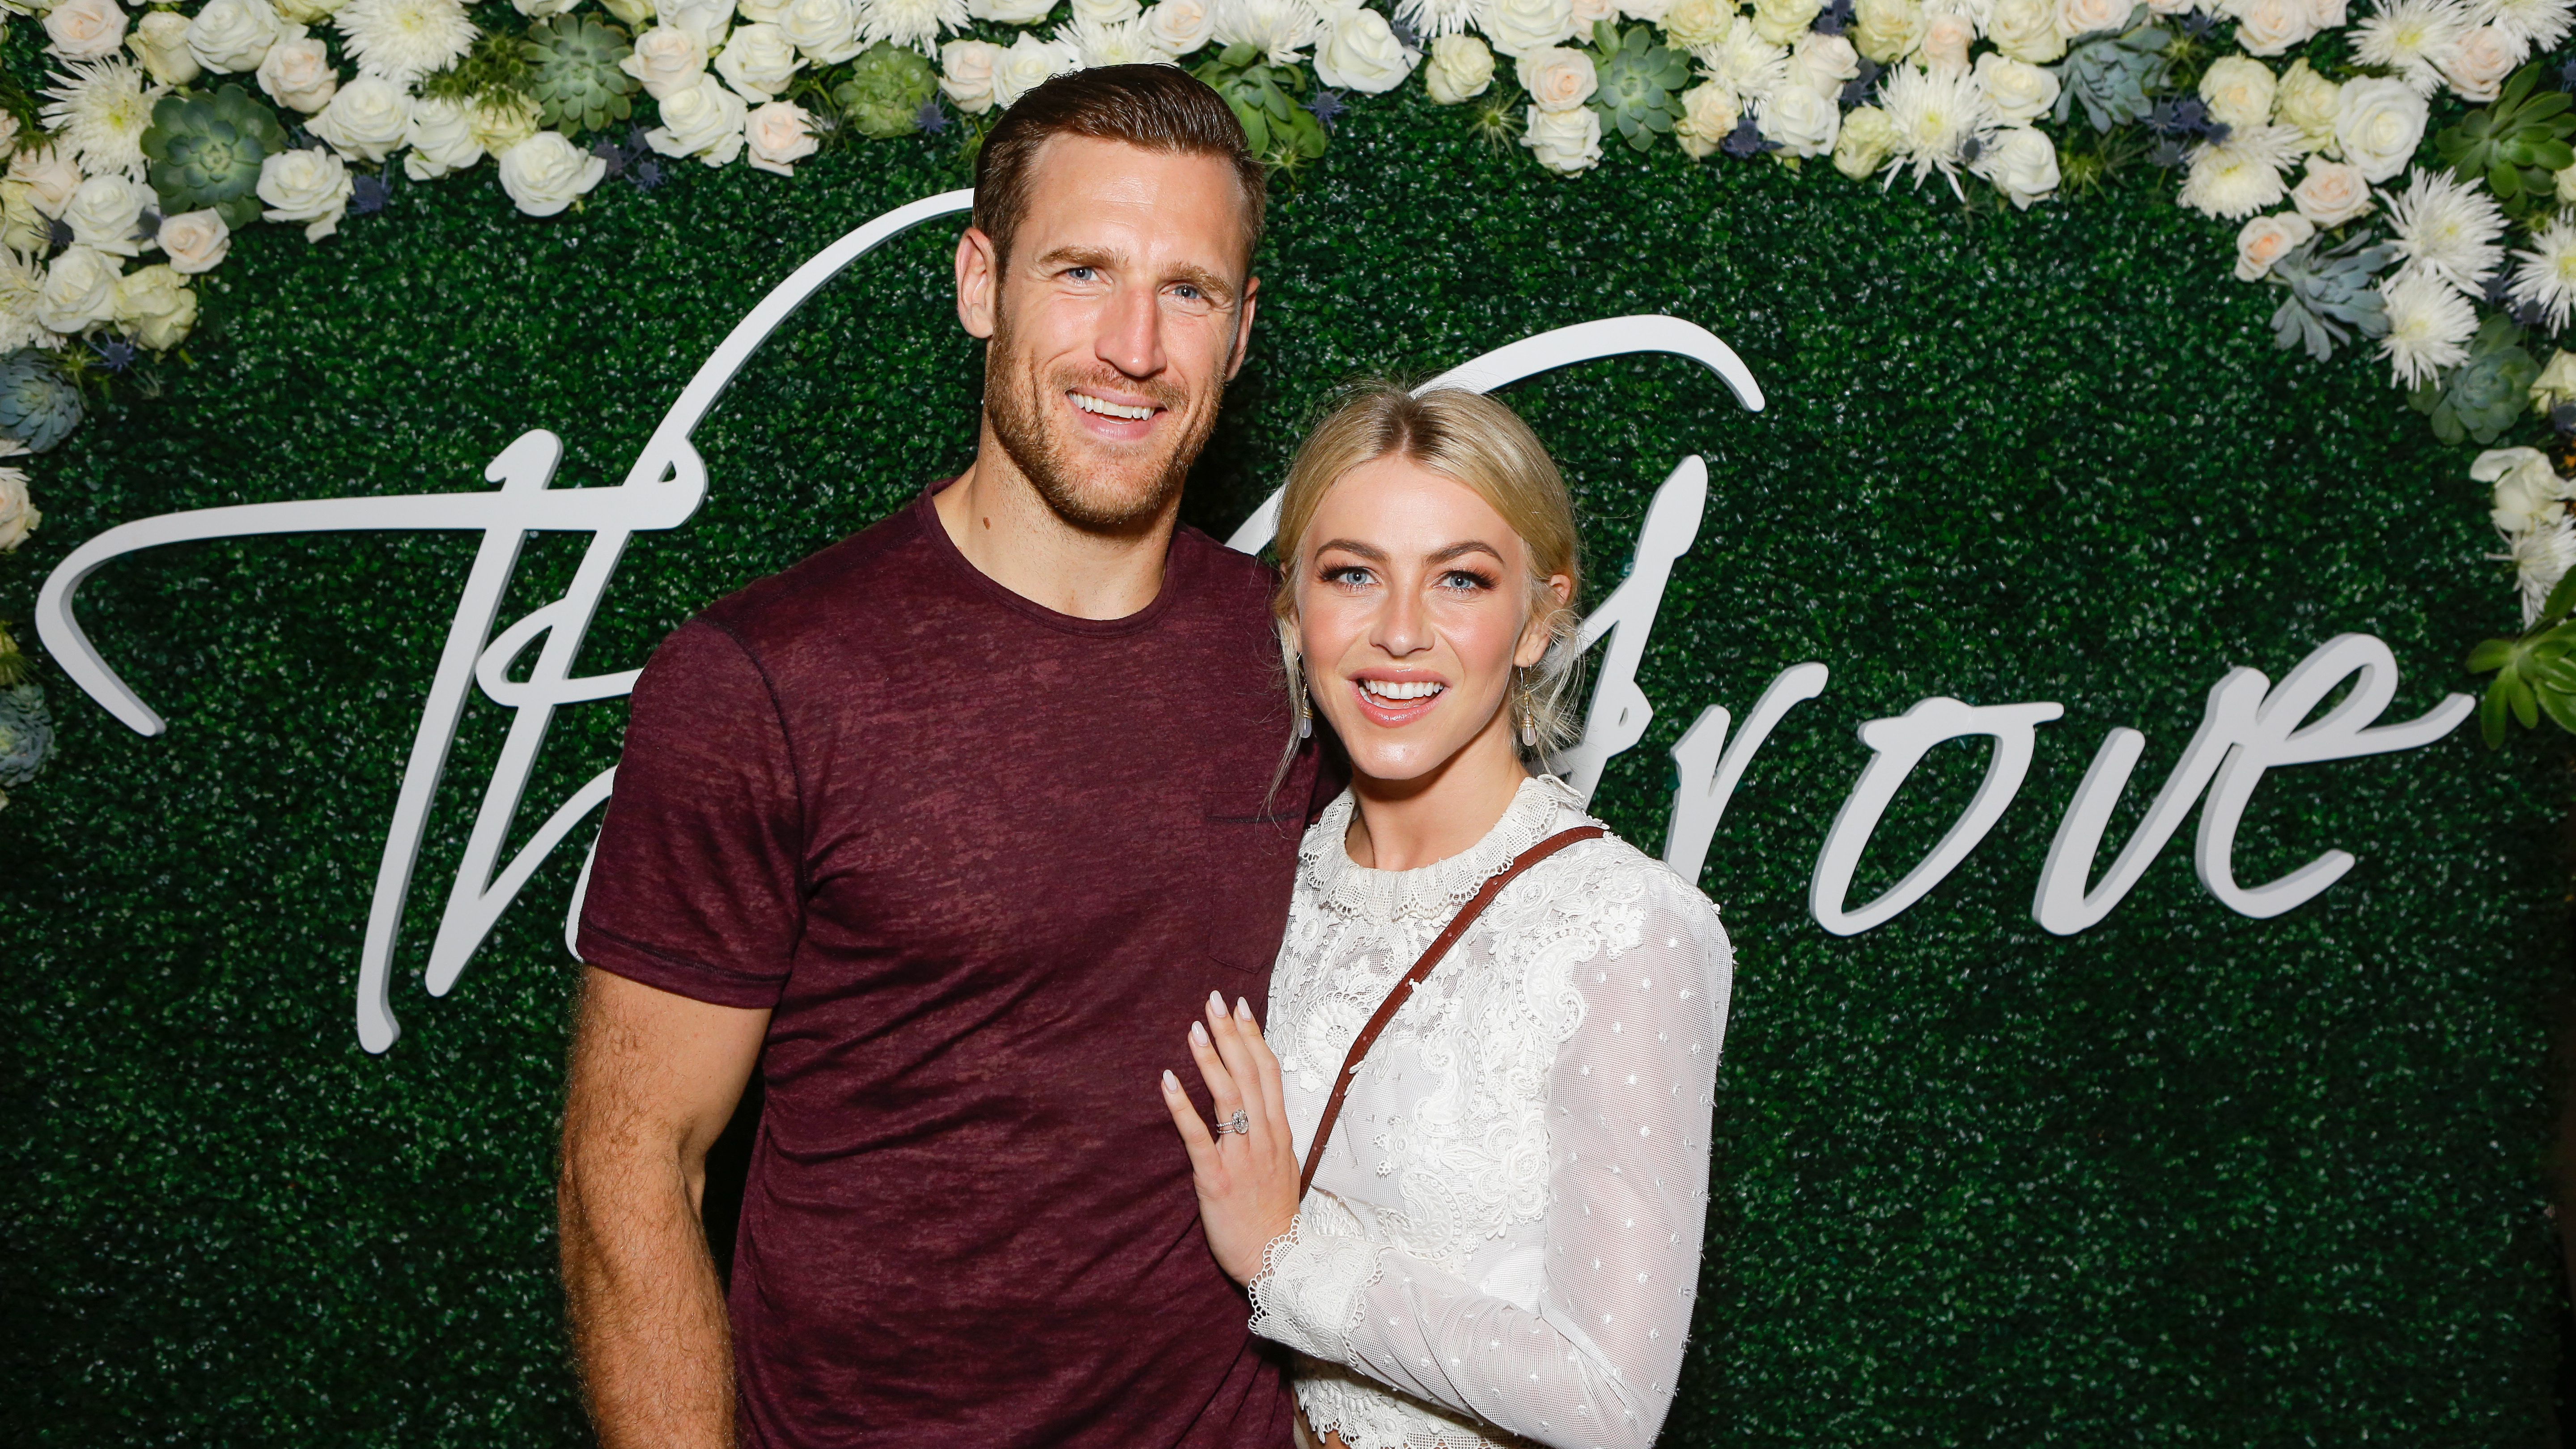 Brooks Laich Wishes 'Amazing Wife' Julianne Hough a Happy Birthday: 'I Love You More Than You'll Ever Know!'